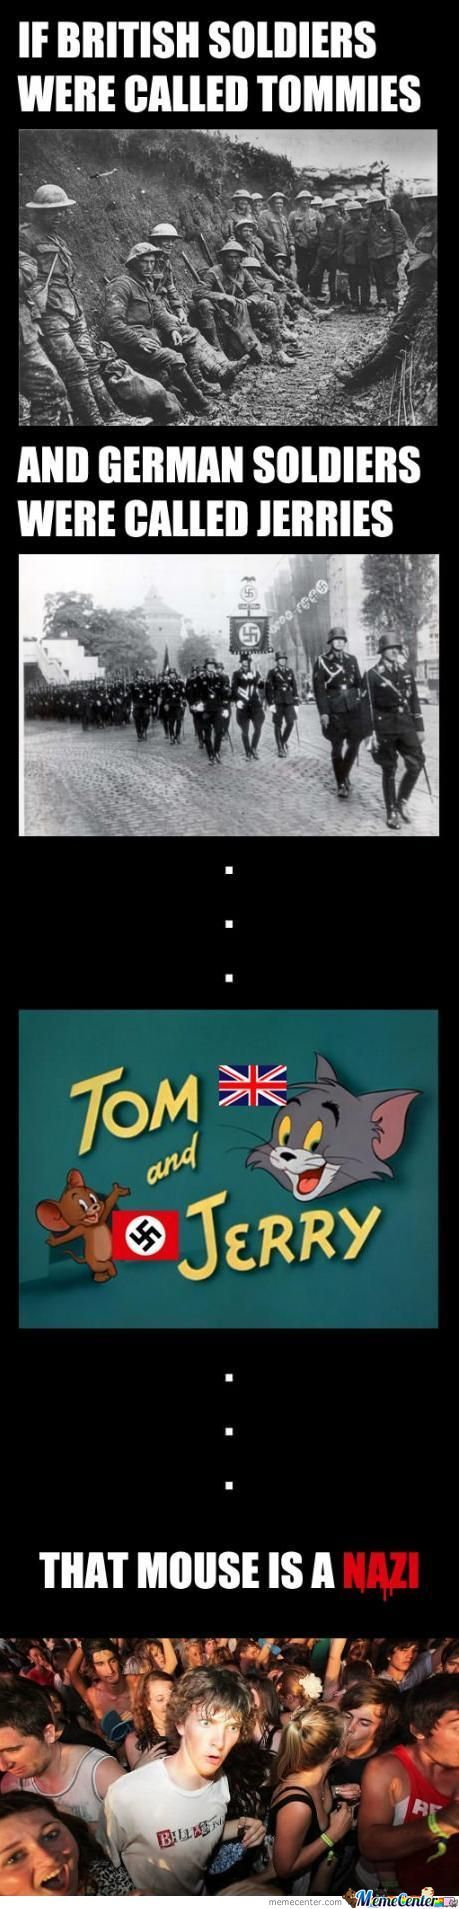 Tom Hand Jerry